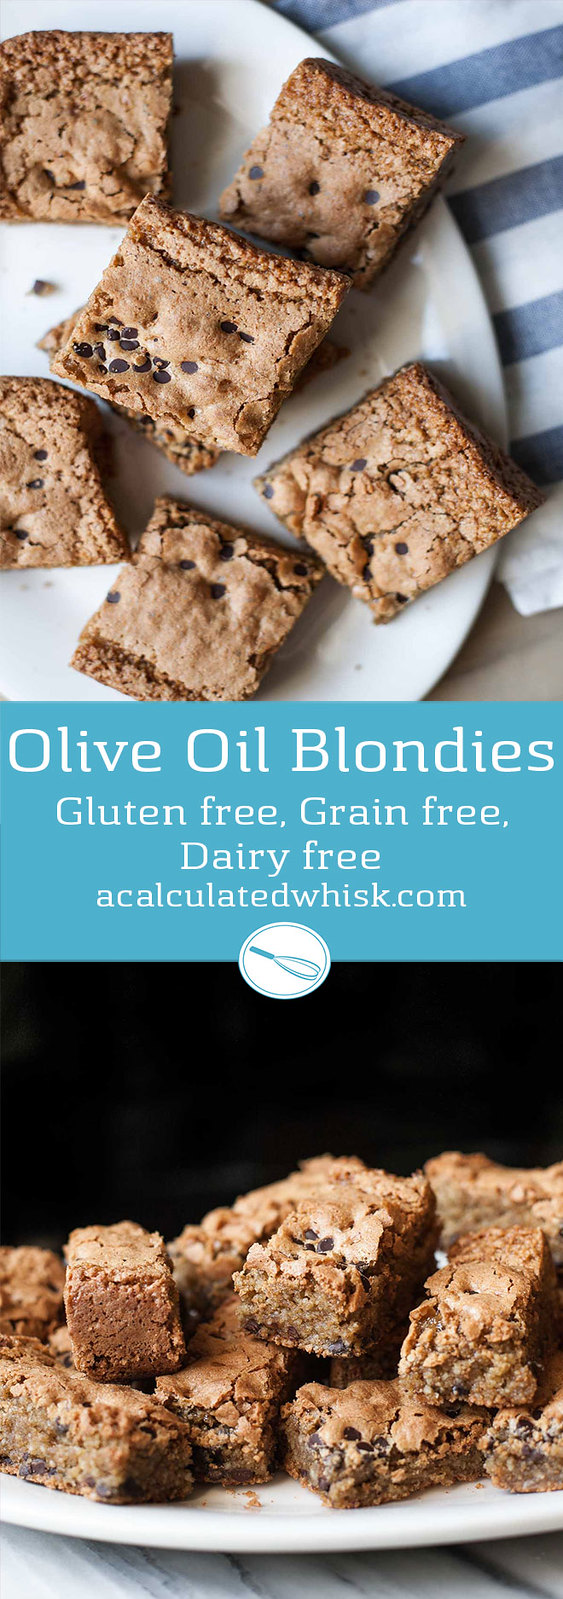 Olive Oil Blondies (Gluten free, Grain free, Dairy free)